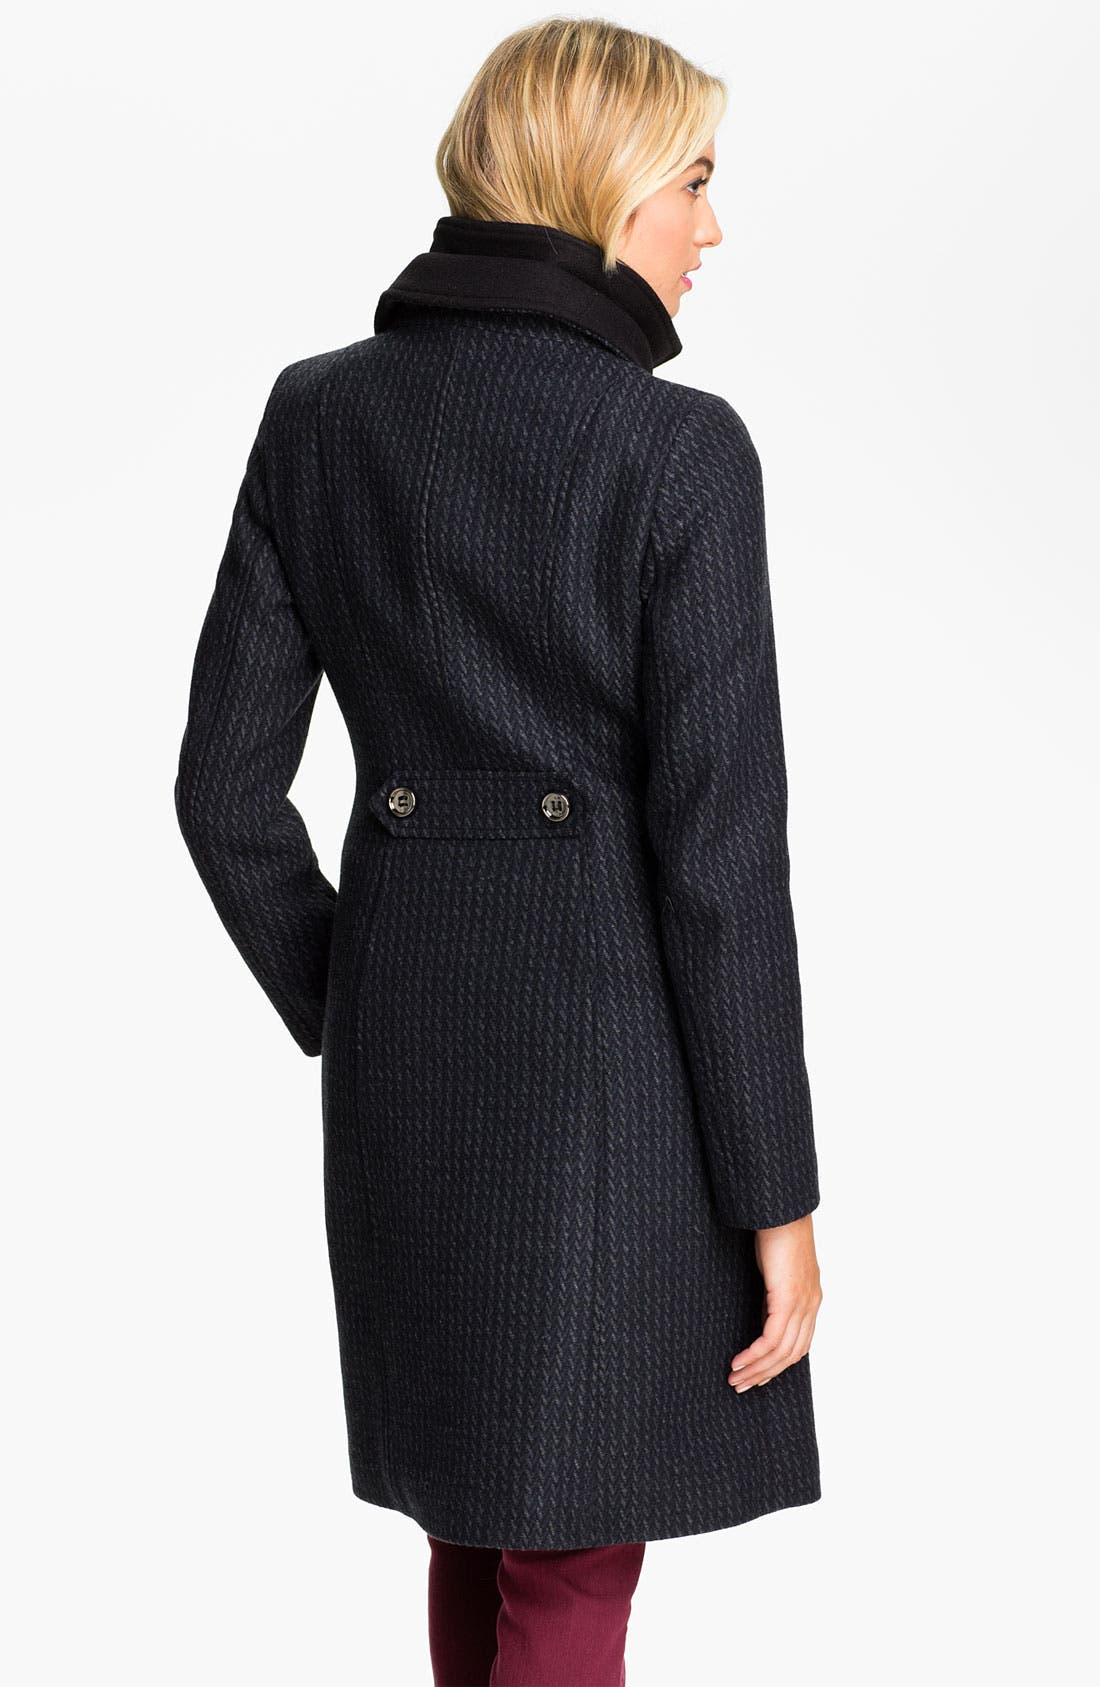 Alternate Image 2  - Soïa & Kyo Knit Collar Tweed Walking Coat